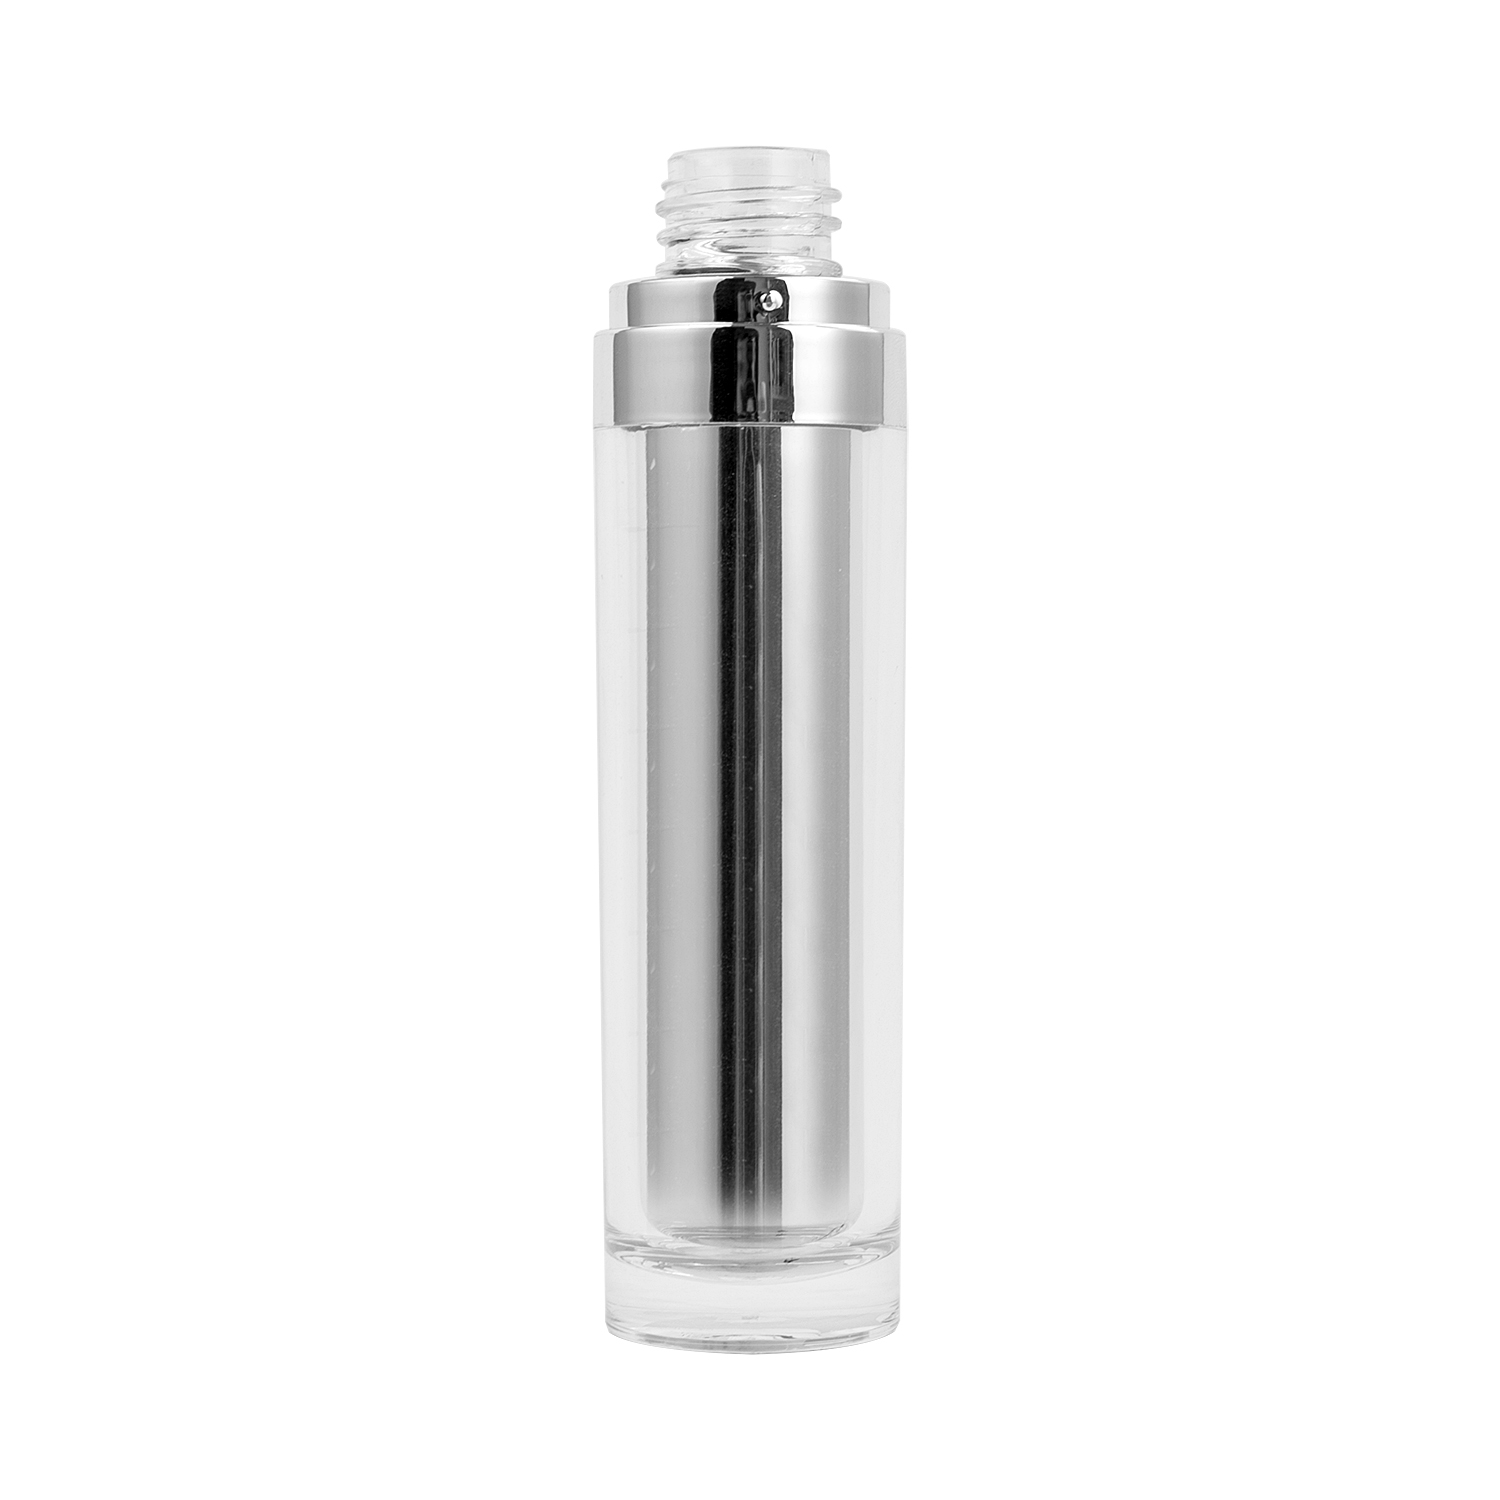 15ml 30ml 50ml Cylinder Lotion Pump Bottle China Cosmetic Bottle